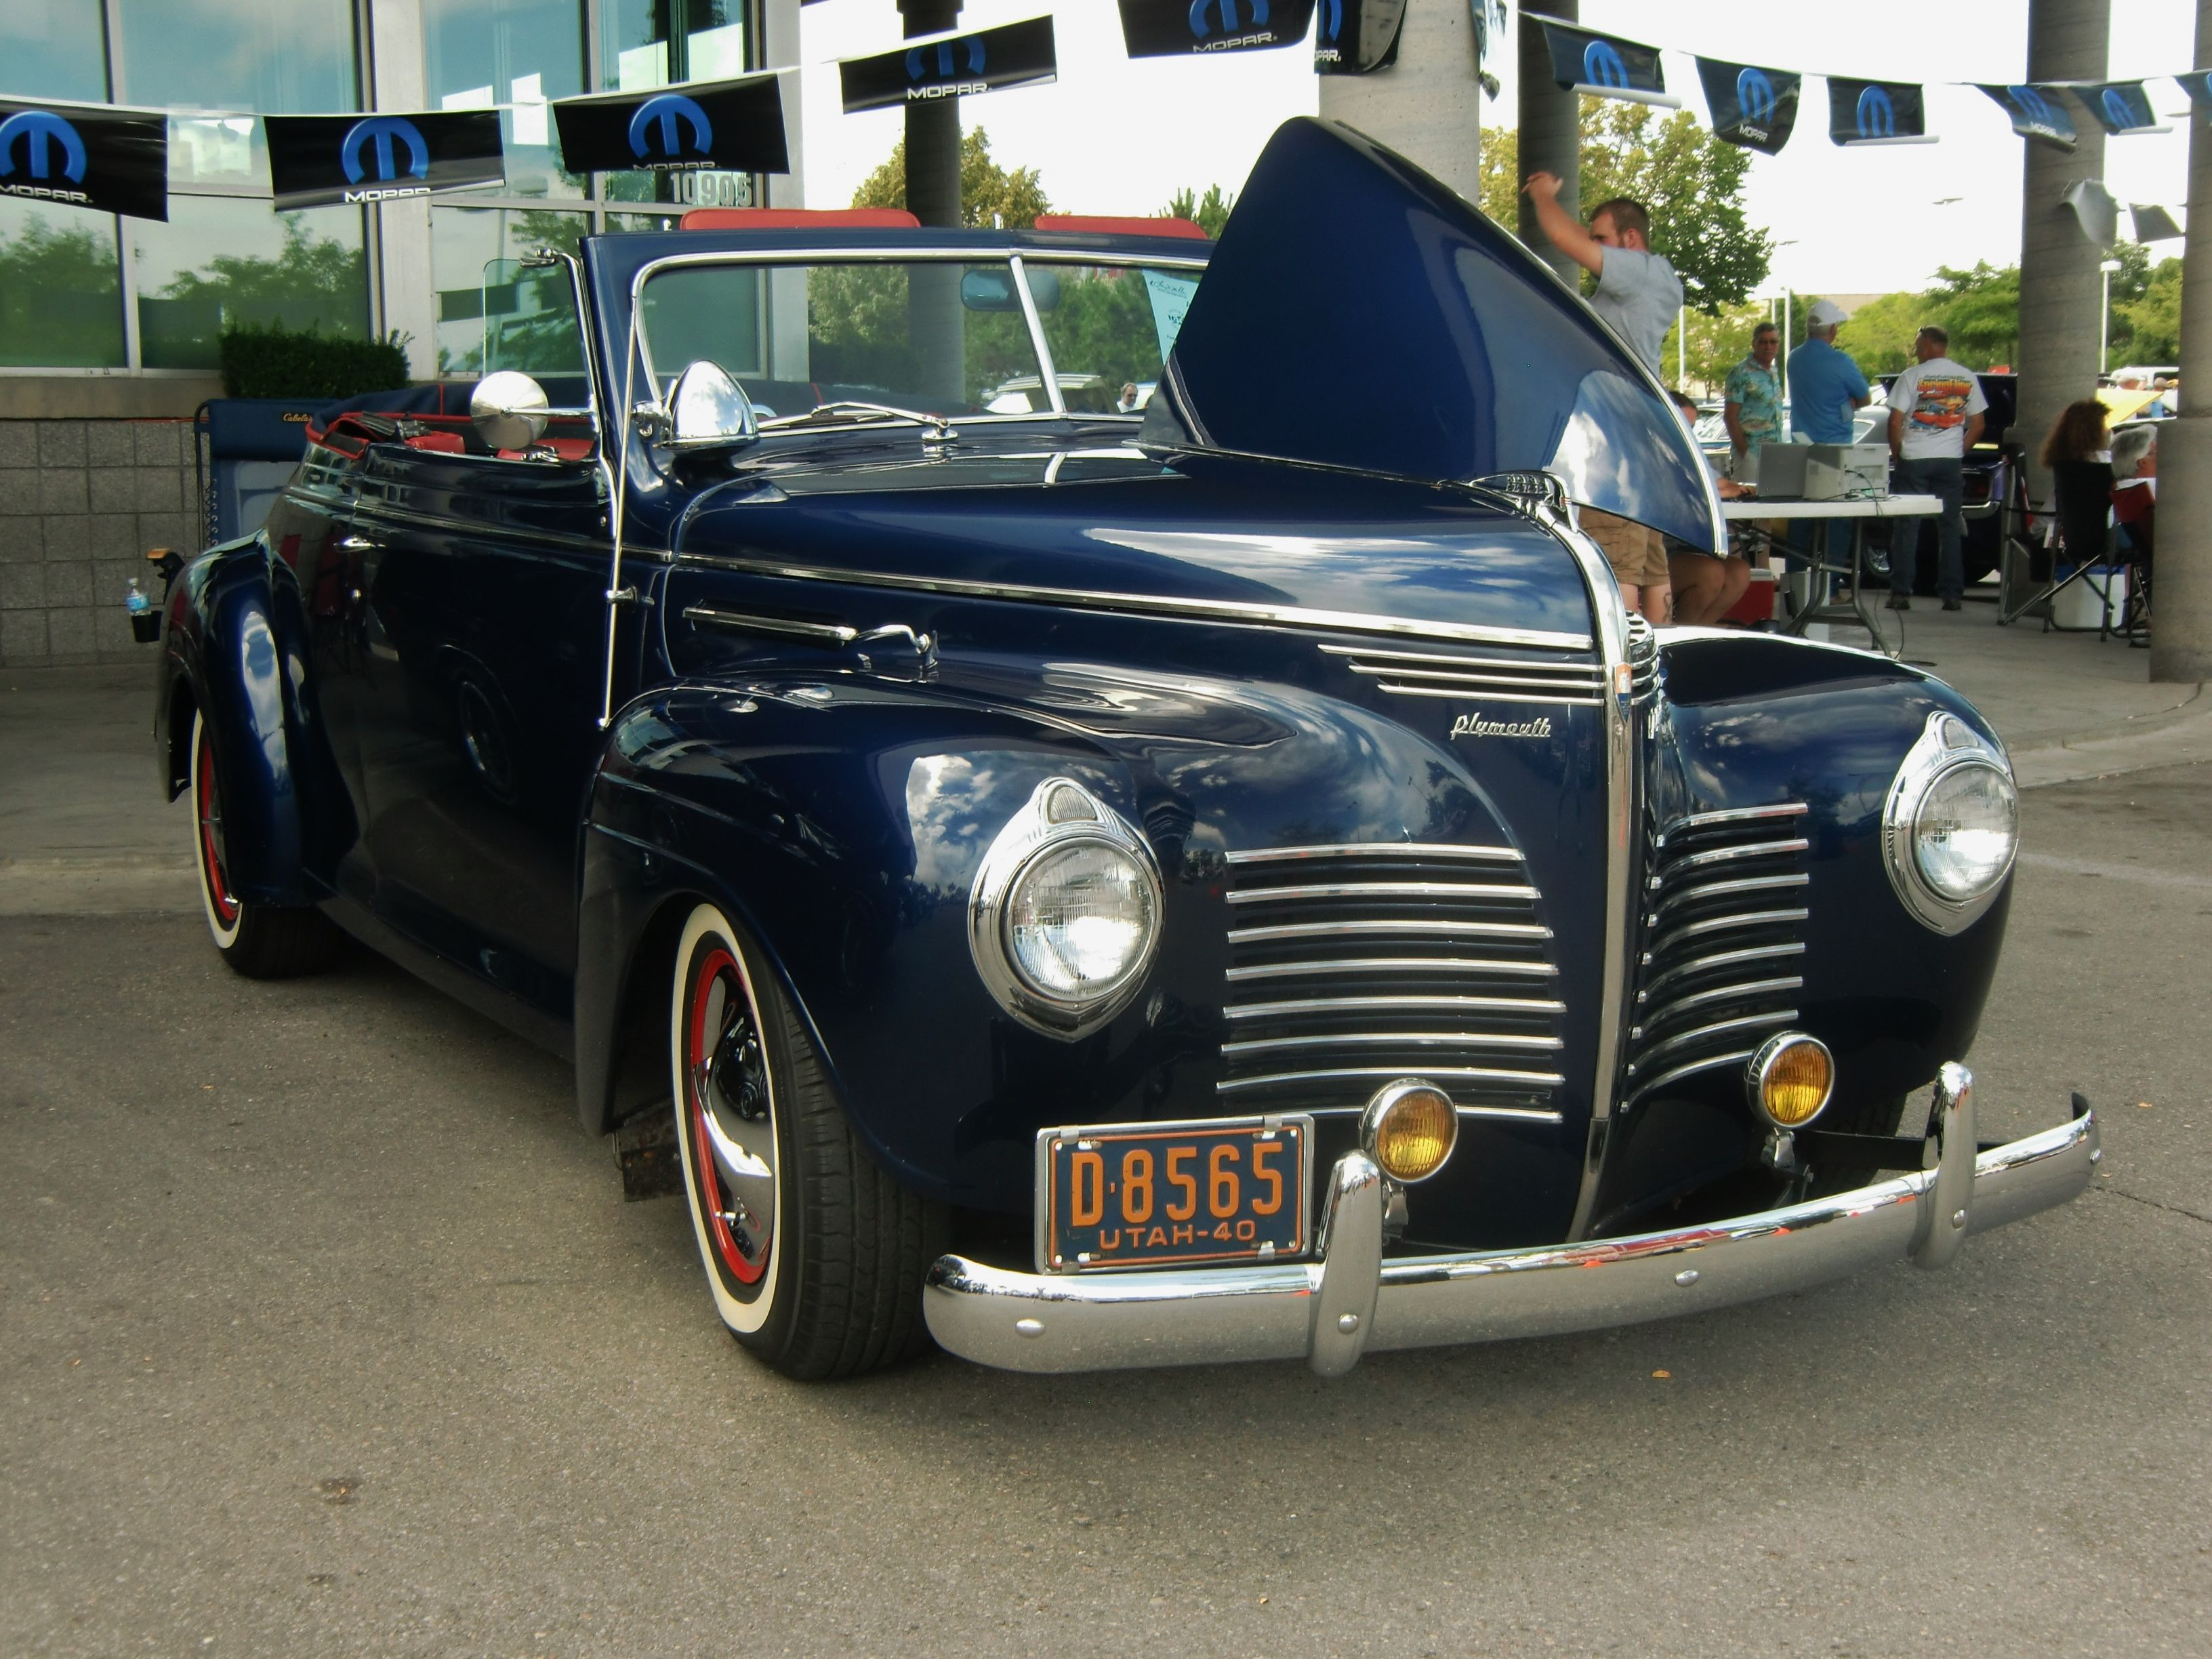 1940 Plymouth convertible. Photography by David E. Nelson